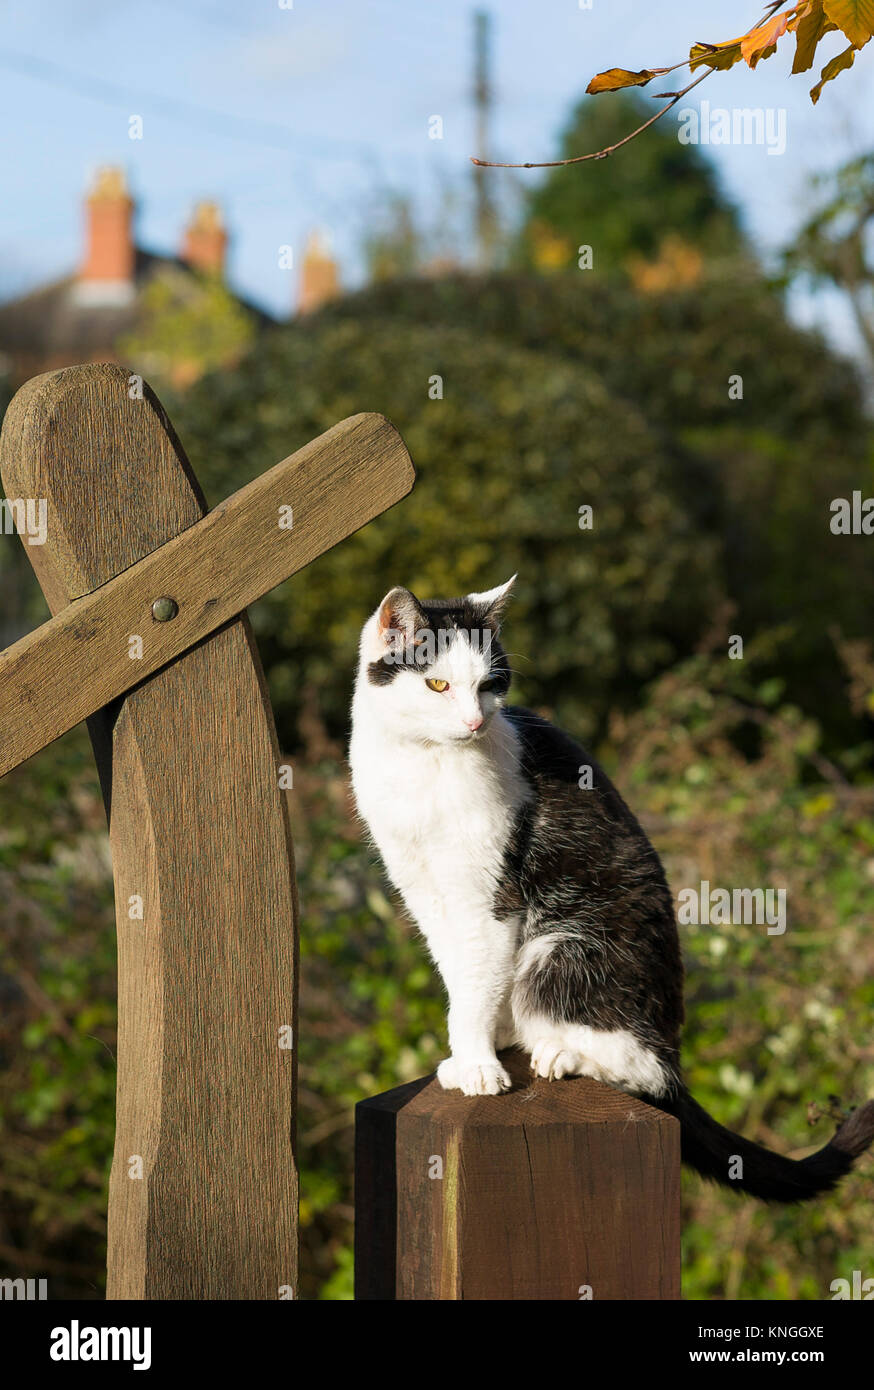 Black and white village cat waiting perched on a gate post in Wiltshire UK - Stock Image